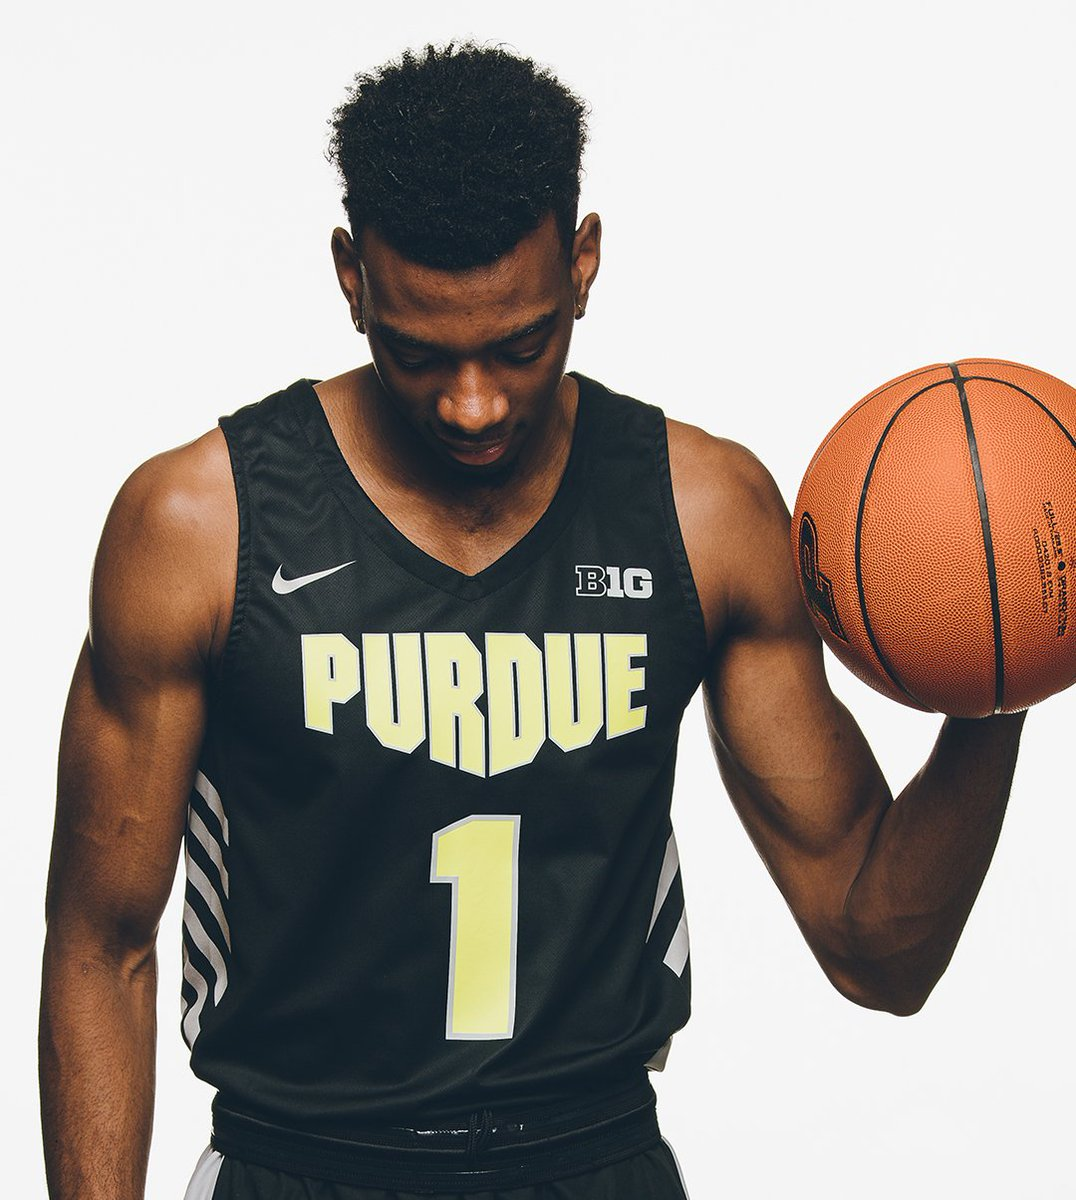 pretty nice 3ad1a a07c7 Purdue Basketball on Twitter: